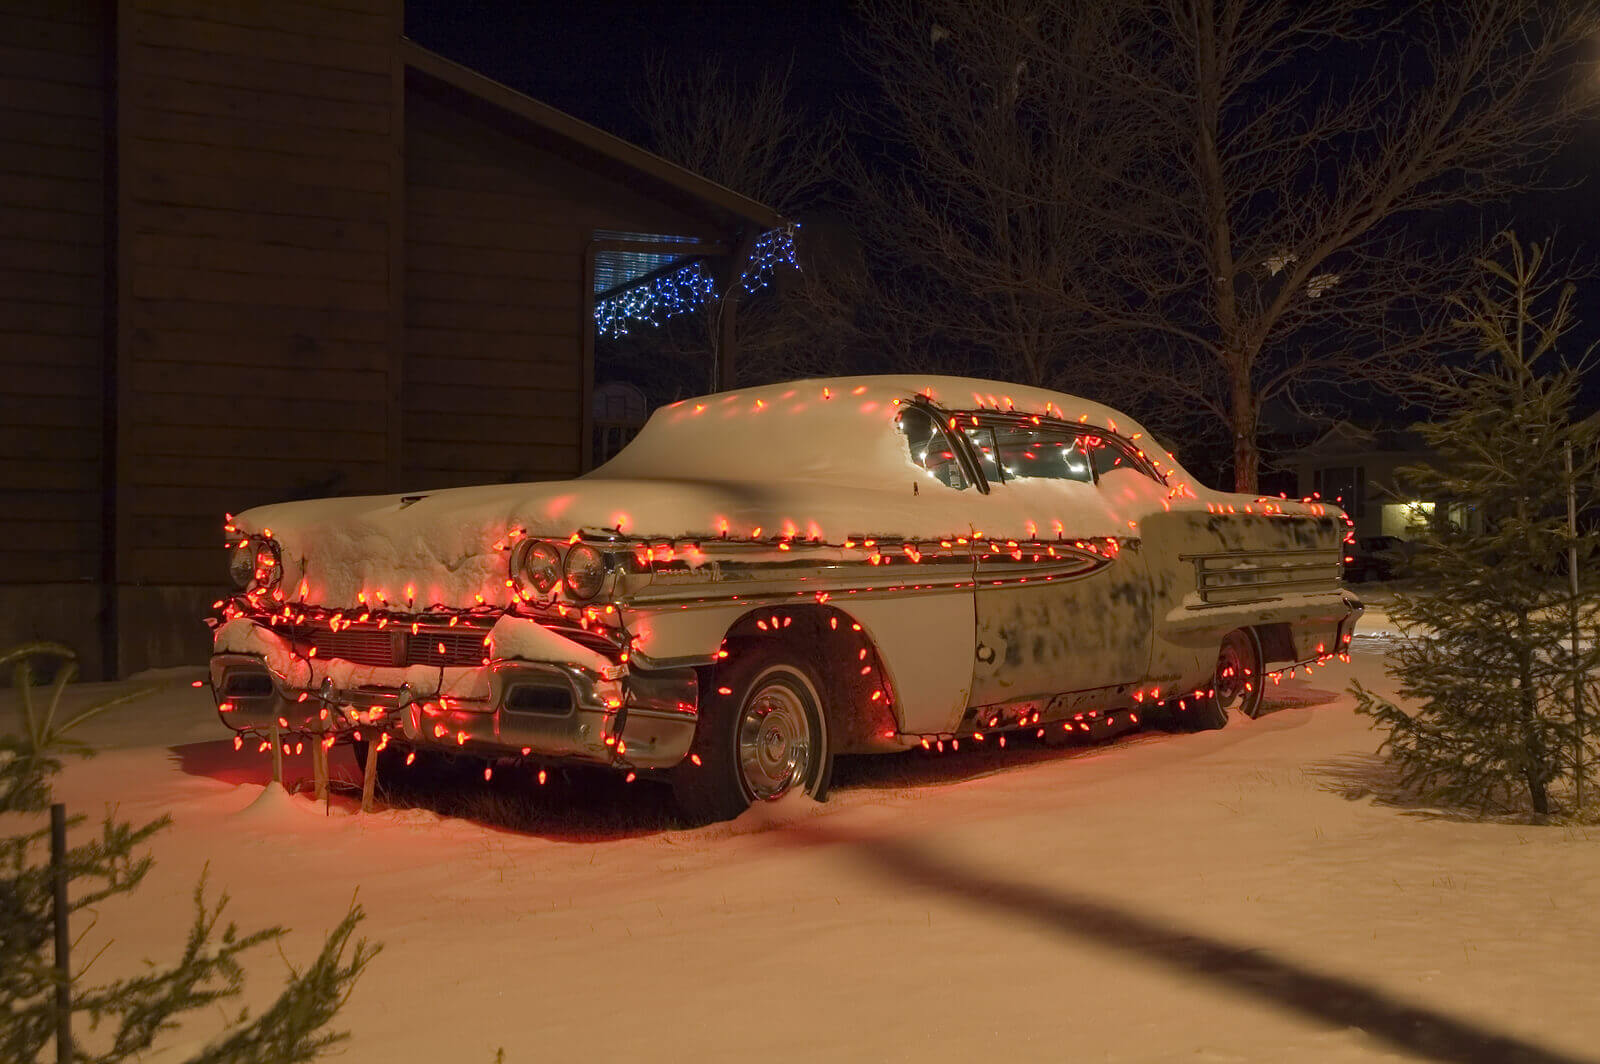 Snow covered car decorated with red christmas lights